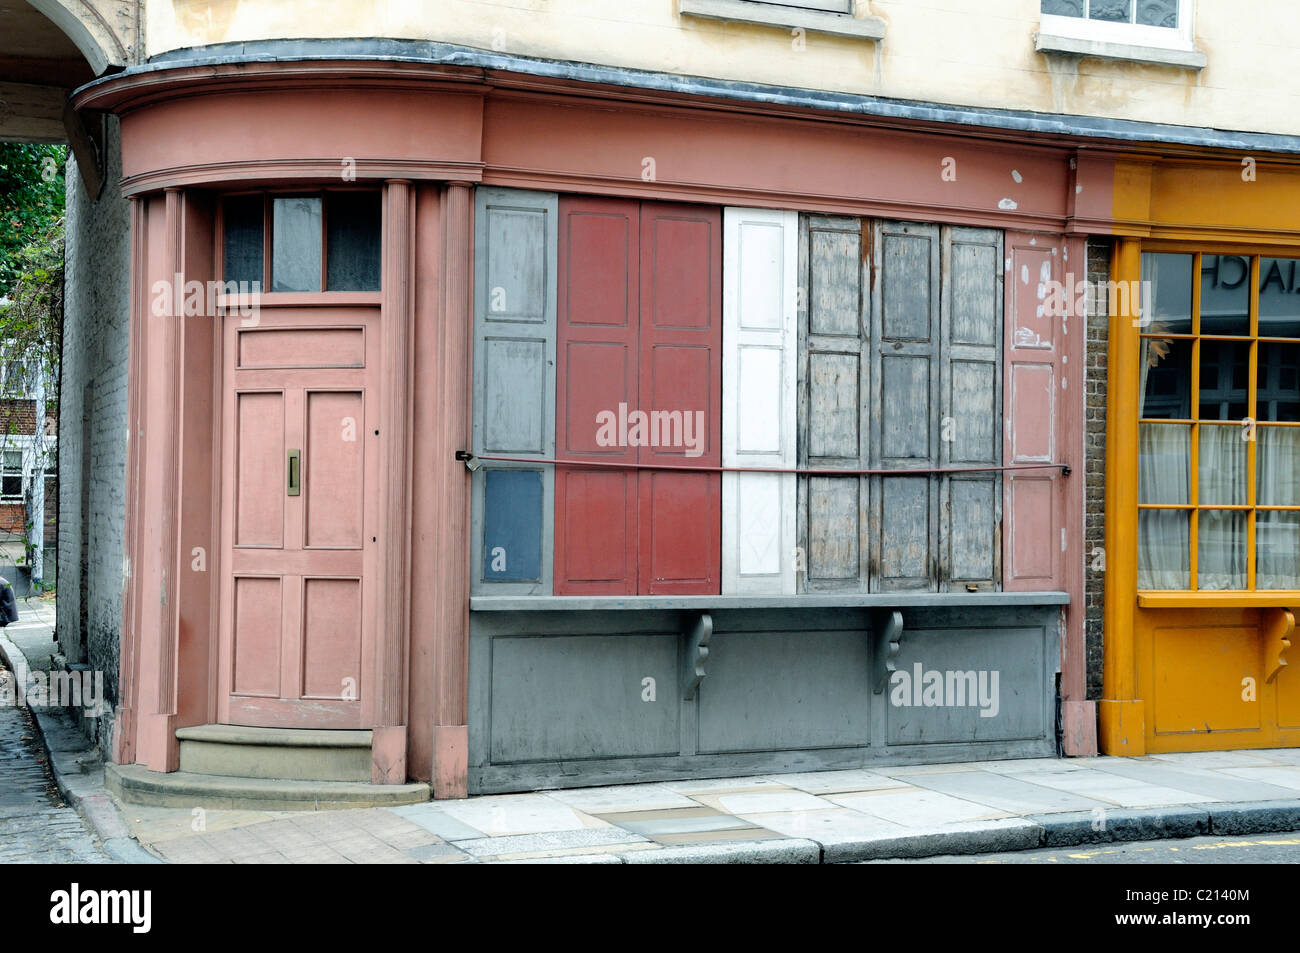 Georgian shop with shuttered windows and rounded front door Bermondsey Street London England UK - Stock Image